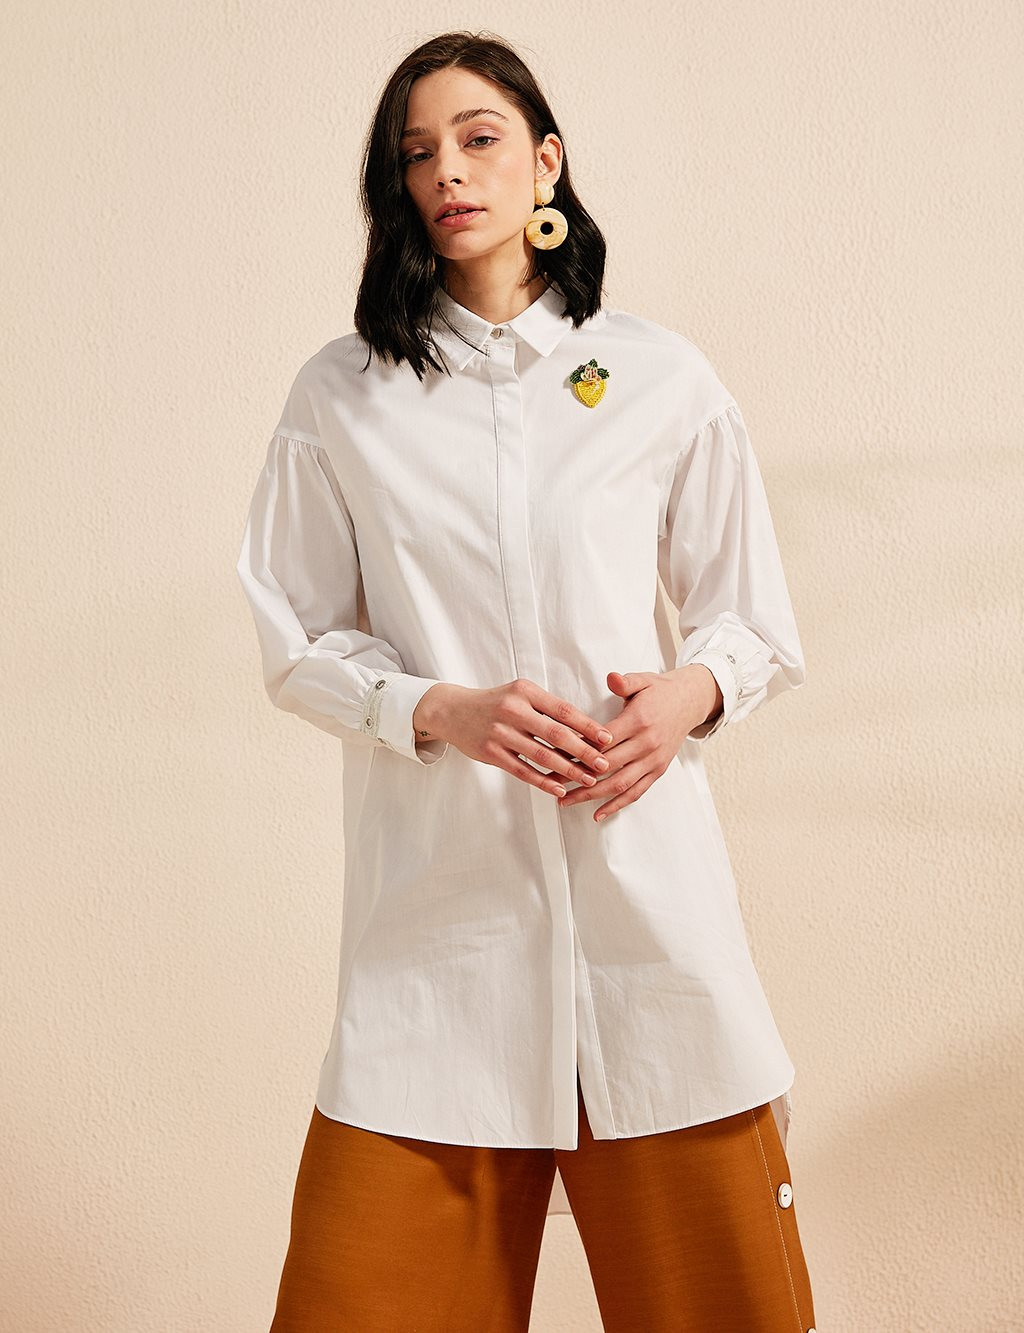 KYR Asymmetric Shirt B20 81001 White